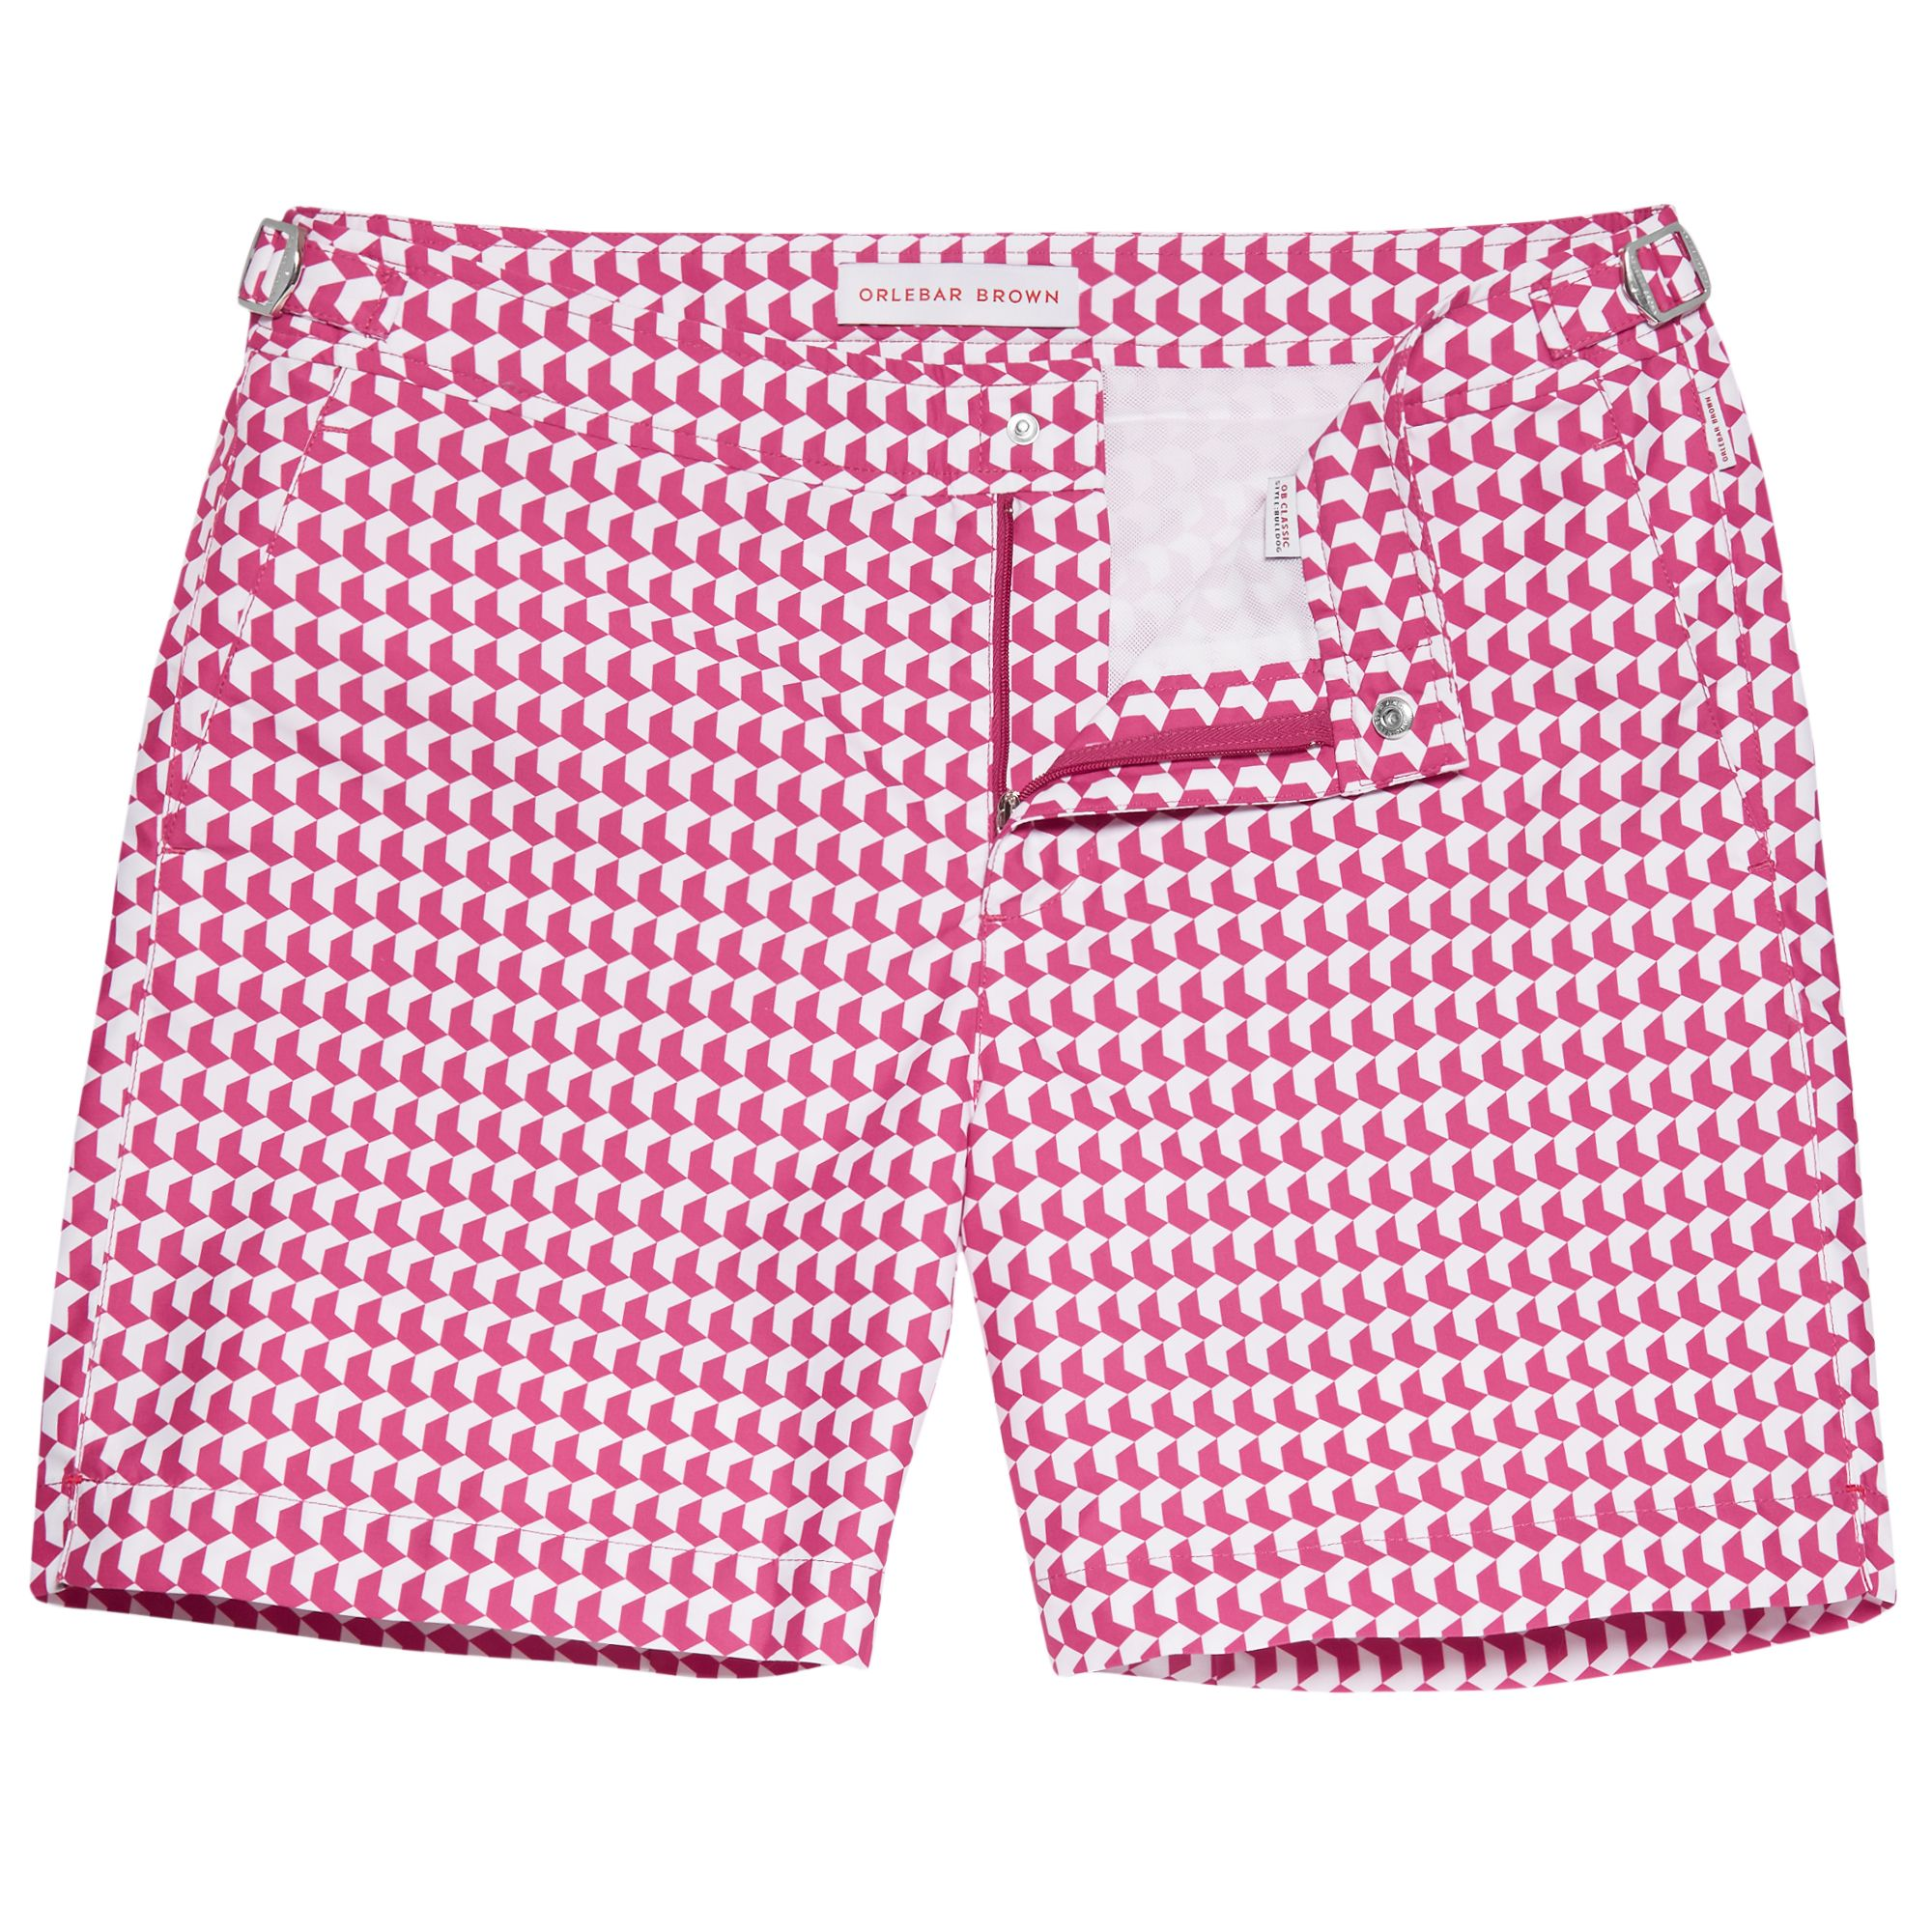 249d046a2a Introduce colour into your wardrobe via one of our geometric prints, such  as this playful paradise pink and white chevron pattern pair. Orlebar Brown